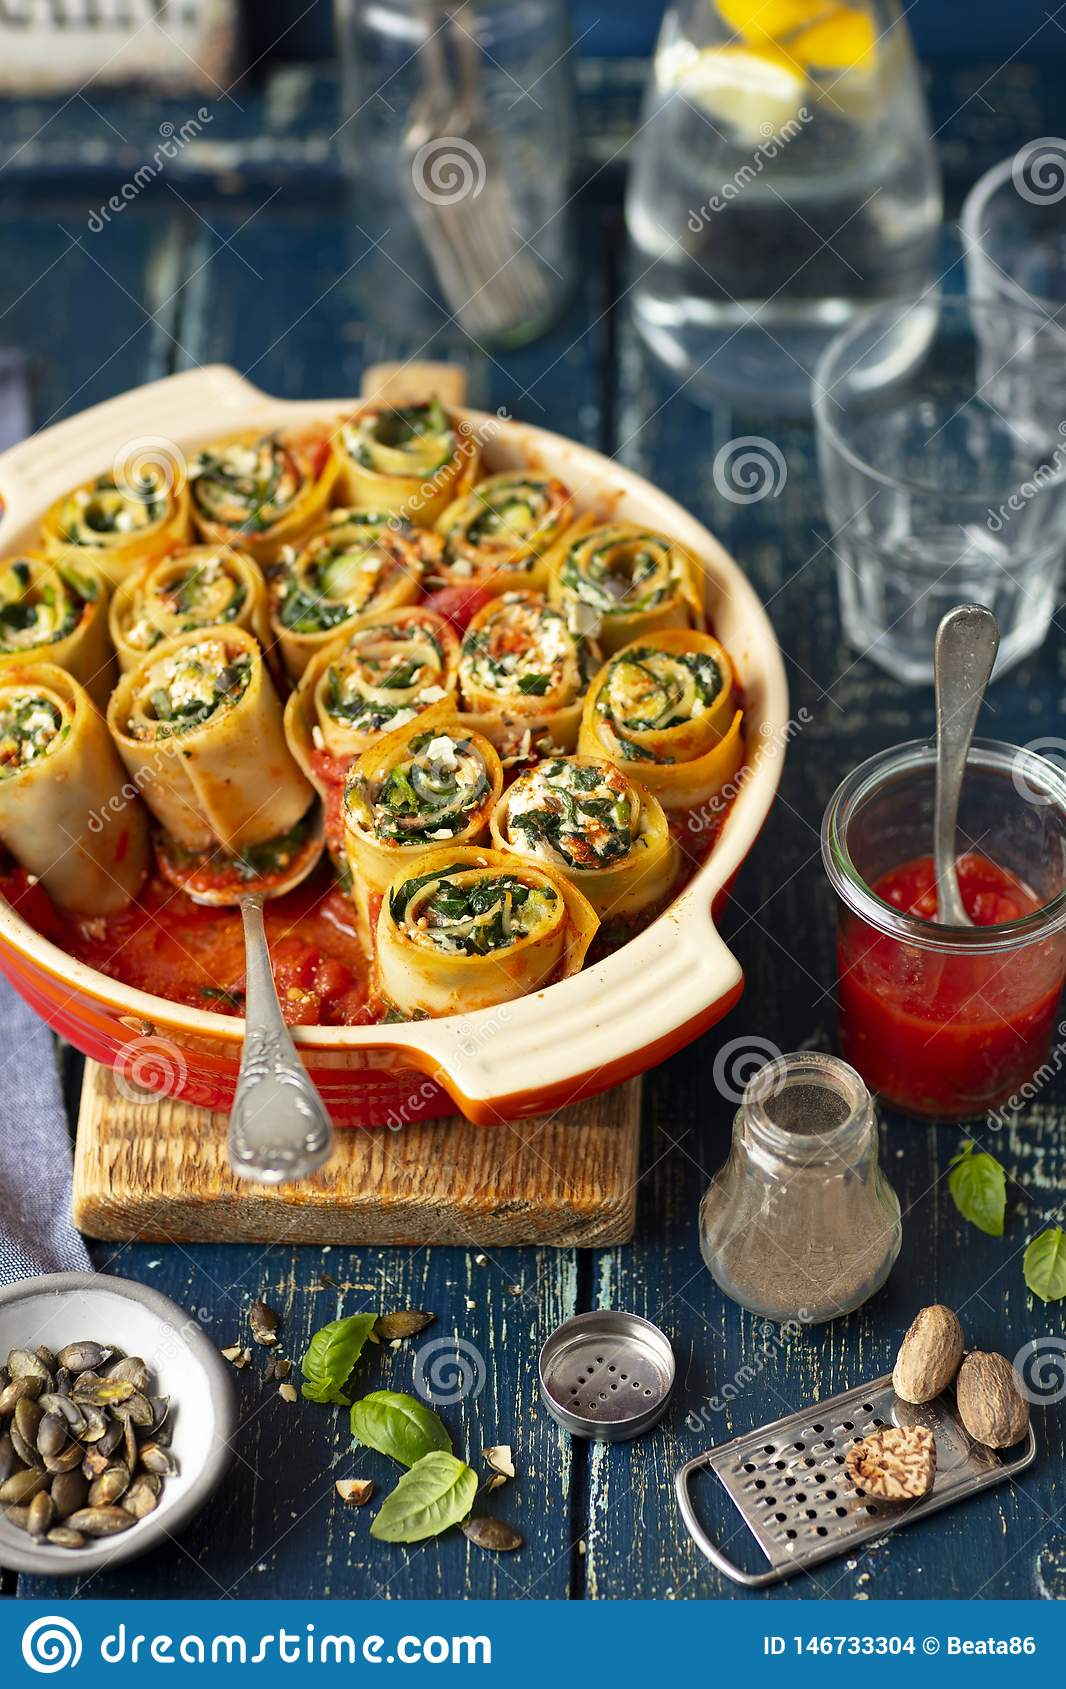 Pasta snails made with lasagne and stuffed with spinach and feta cheese